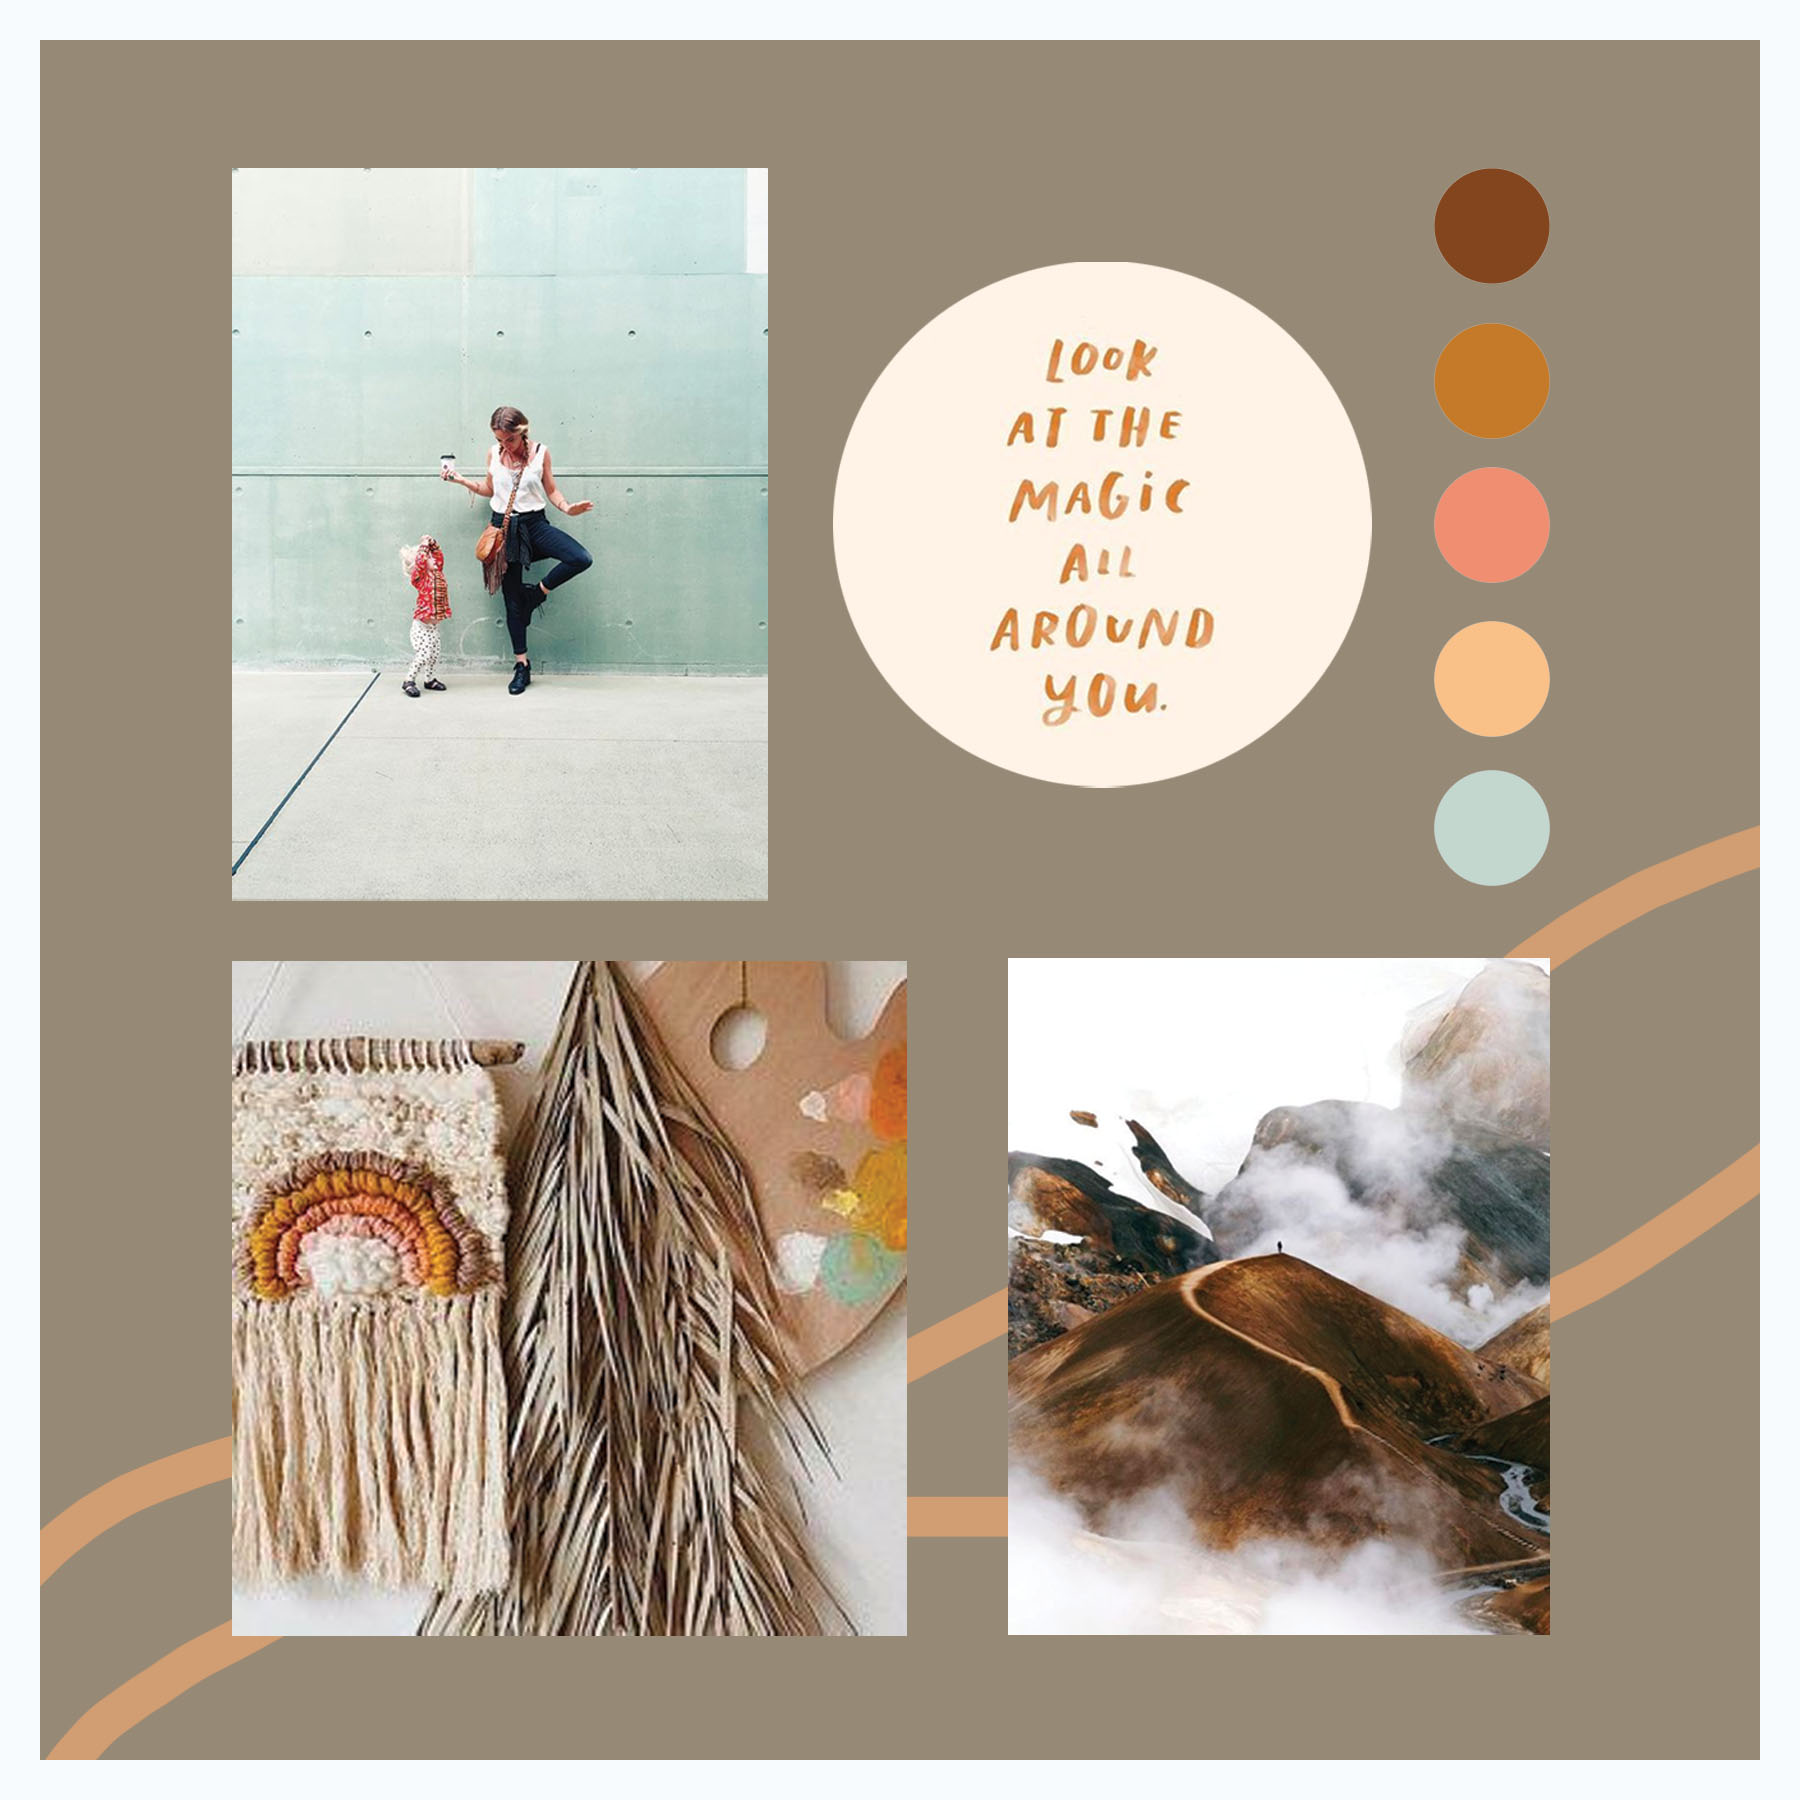 Moodboard curated using Pinterest images only